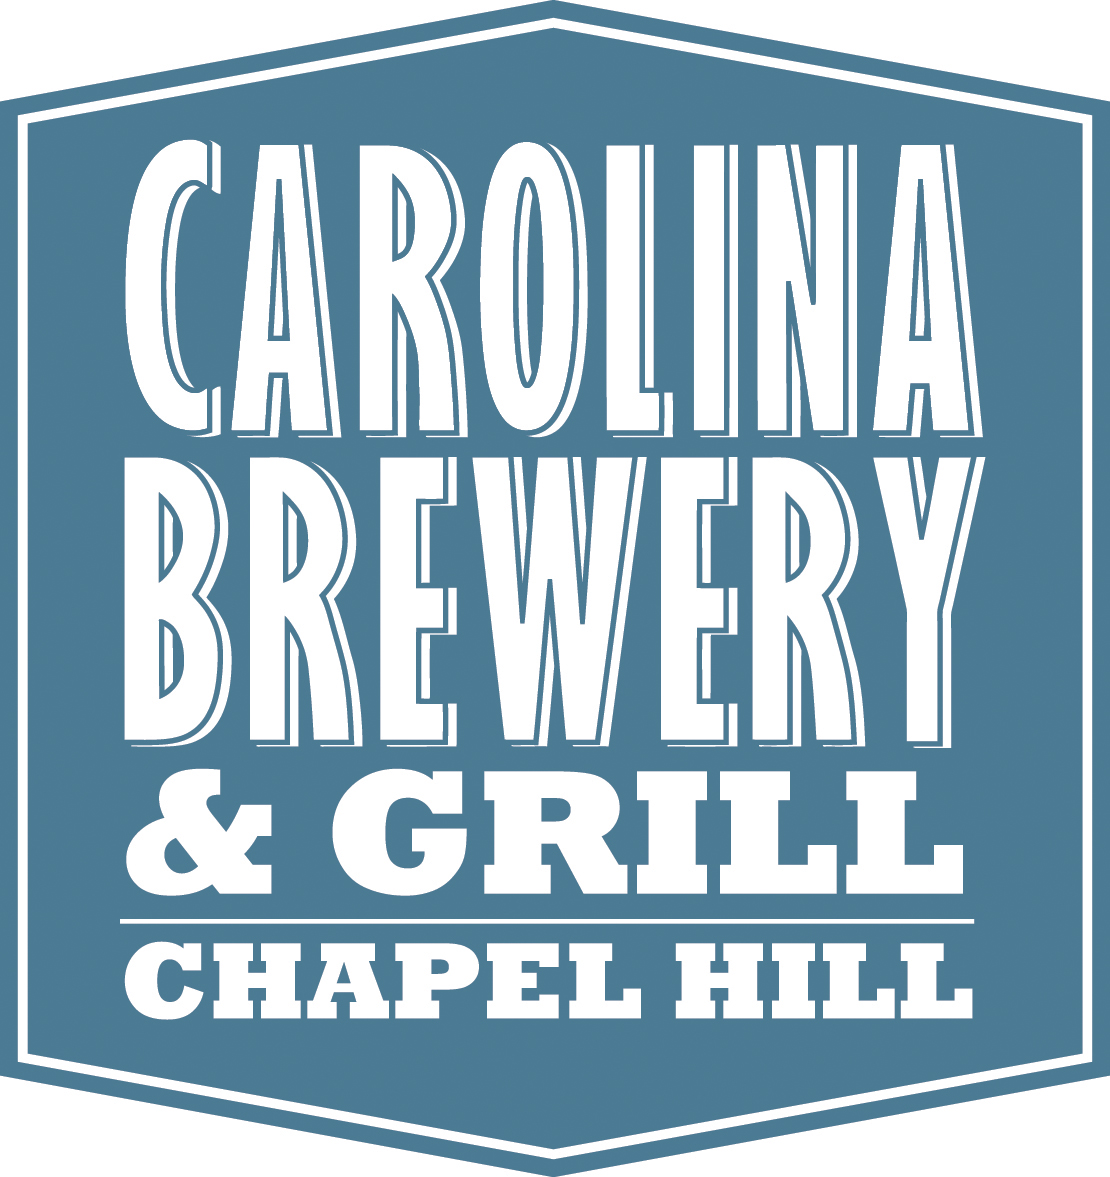 Carolina Brewery Logo 1.15.15.jpg